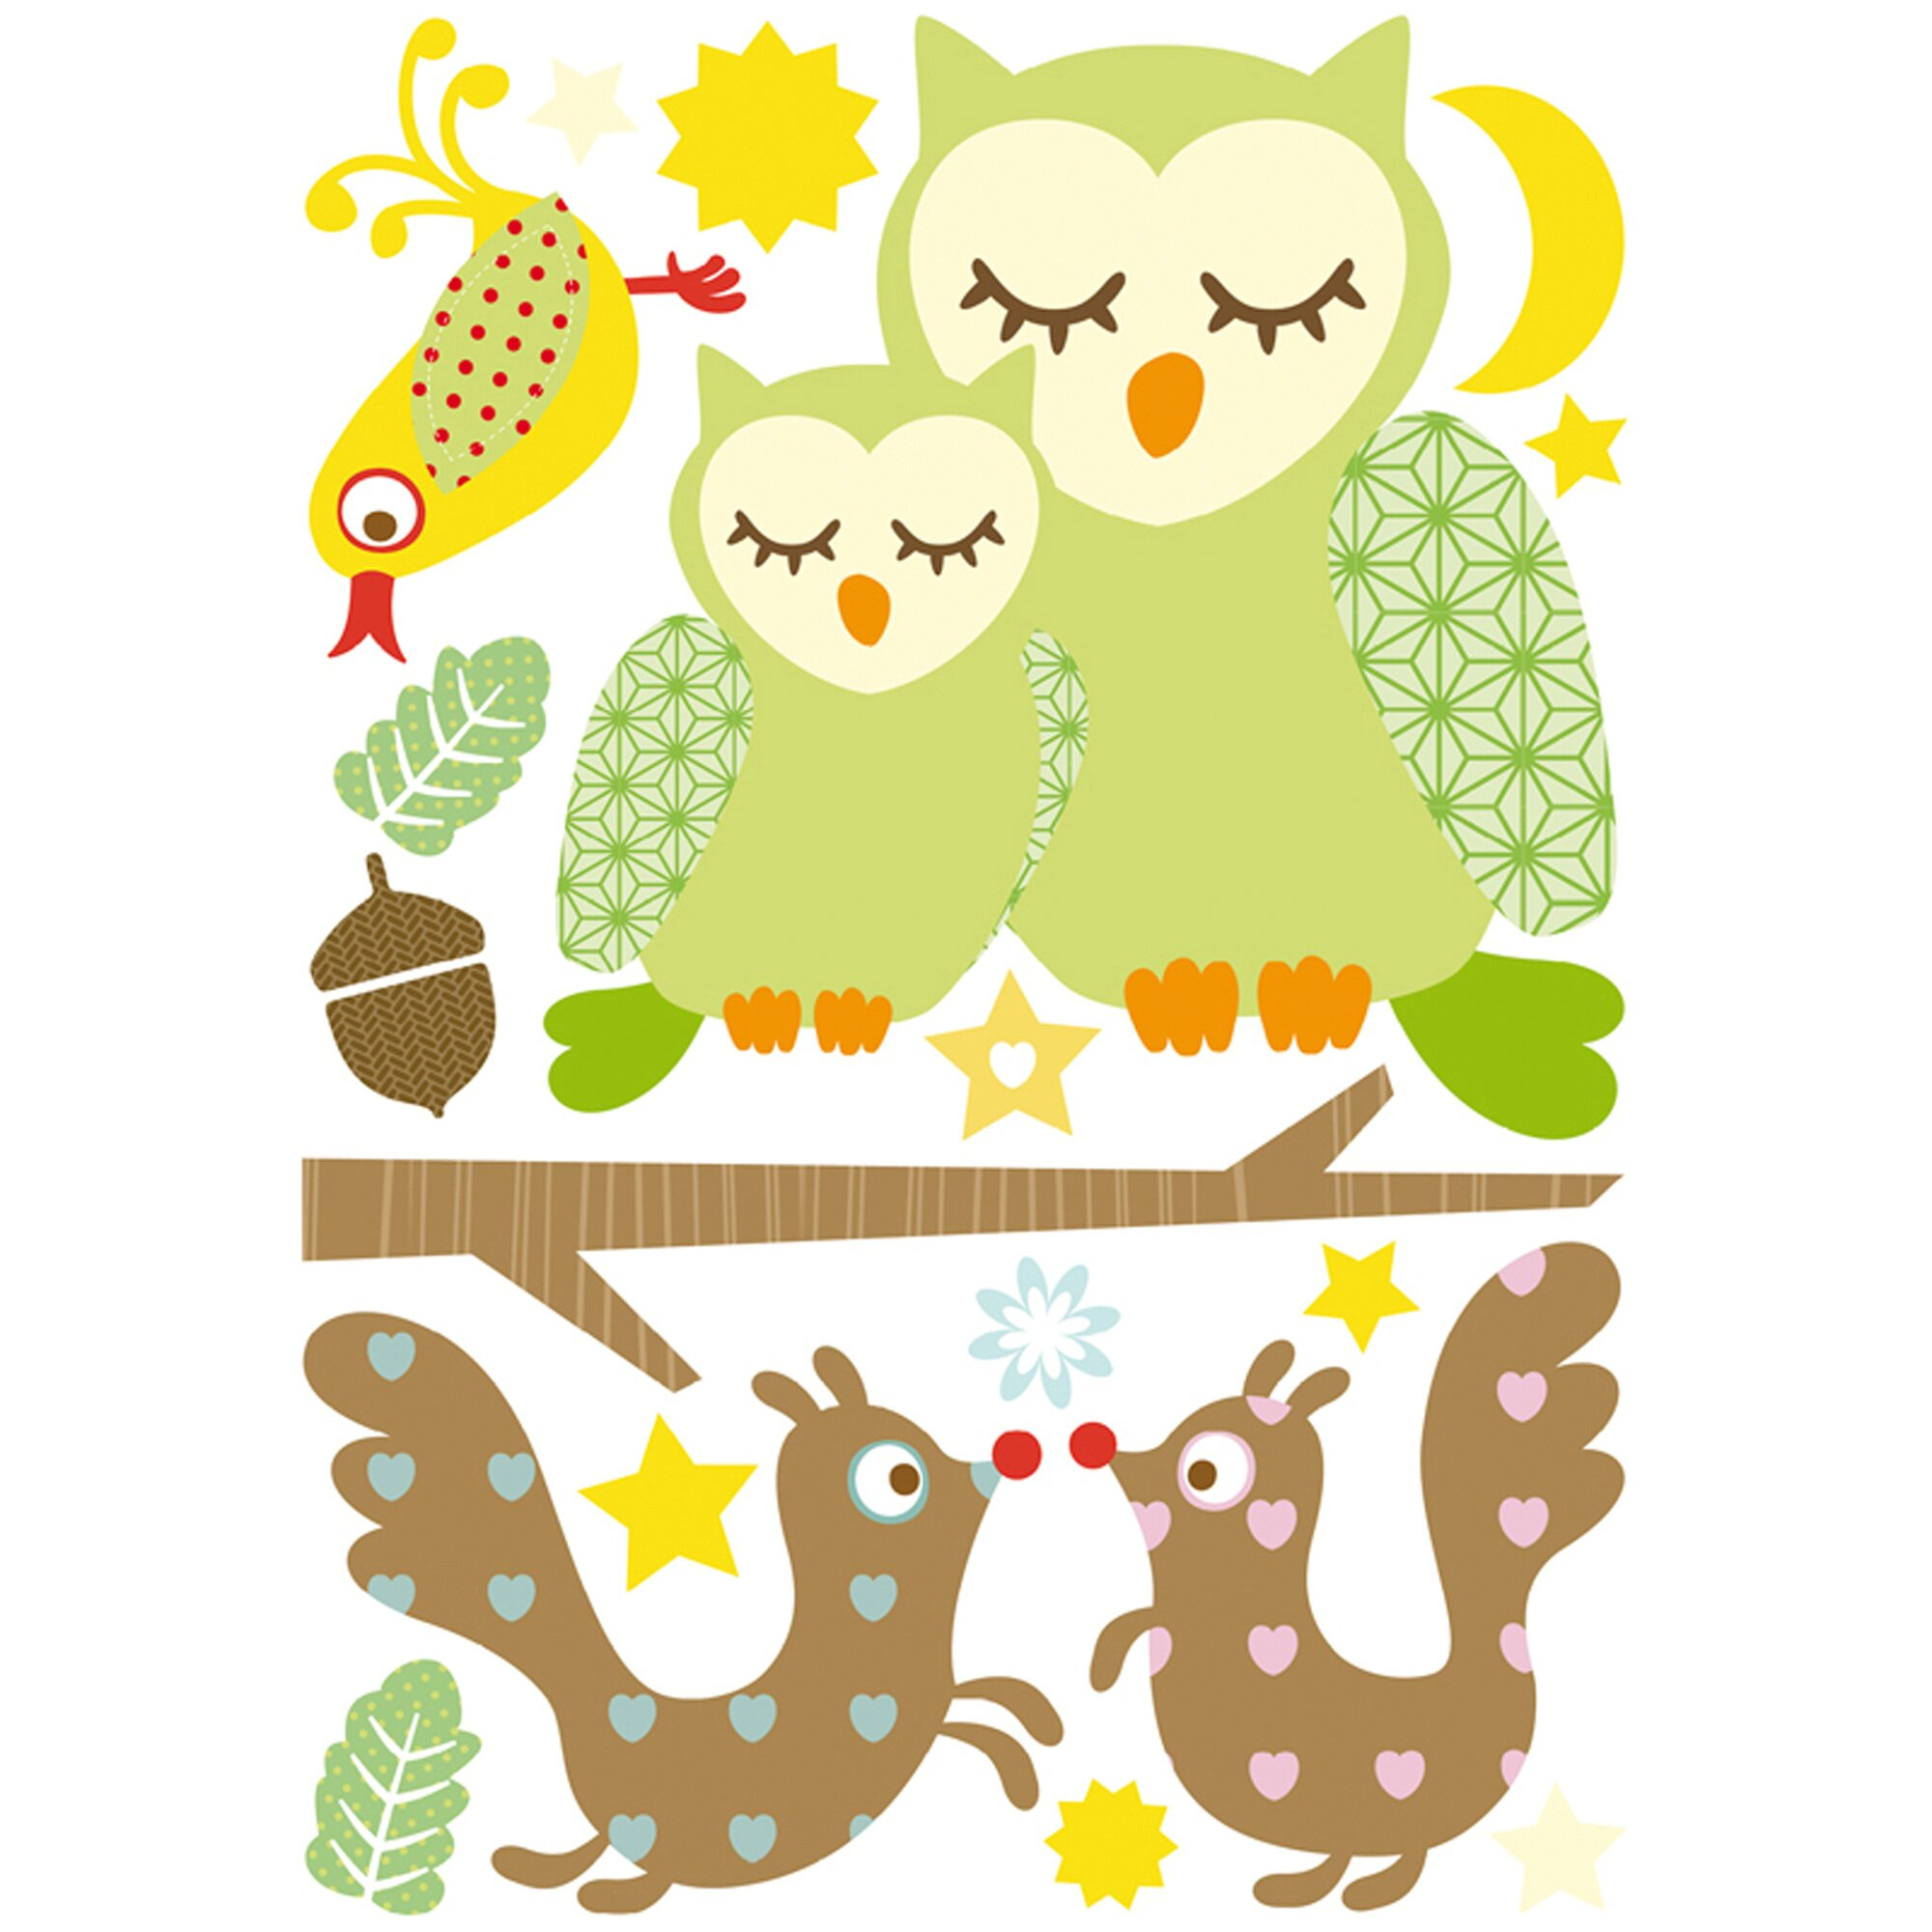 anna-wand-design-wandsticker-maxis-funny-forest